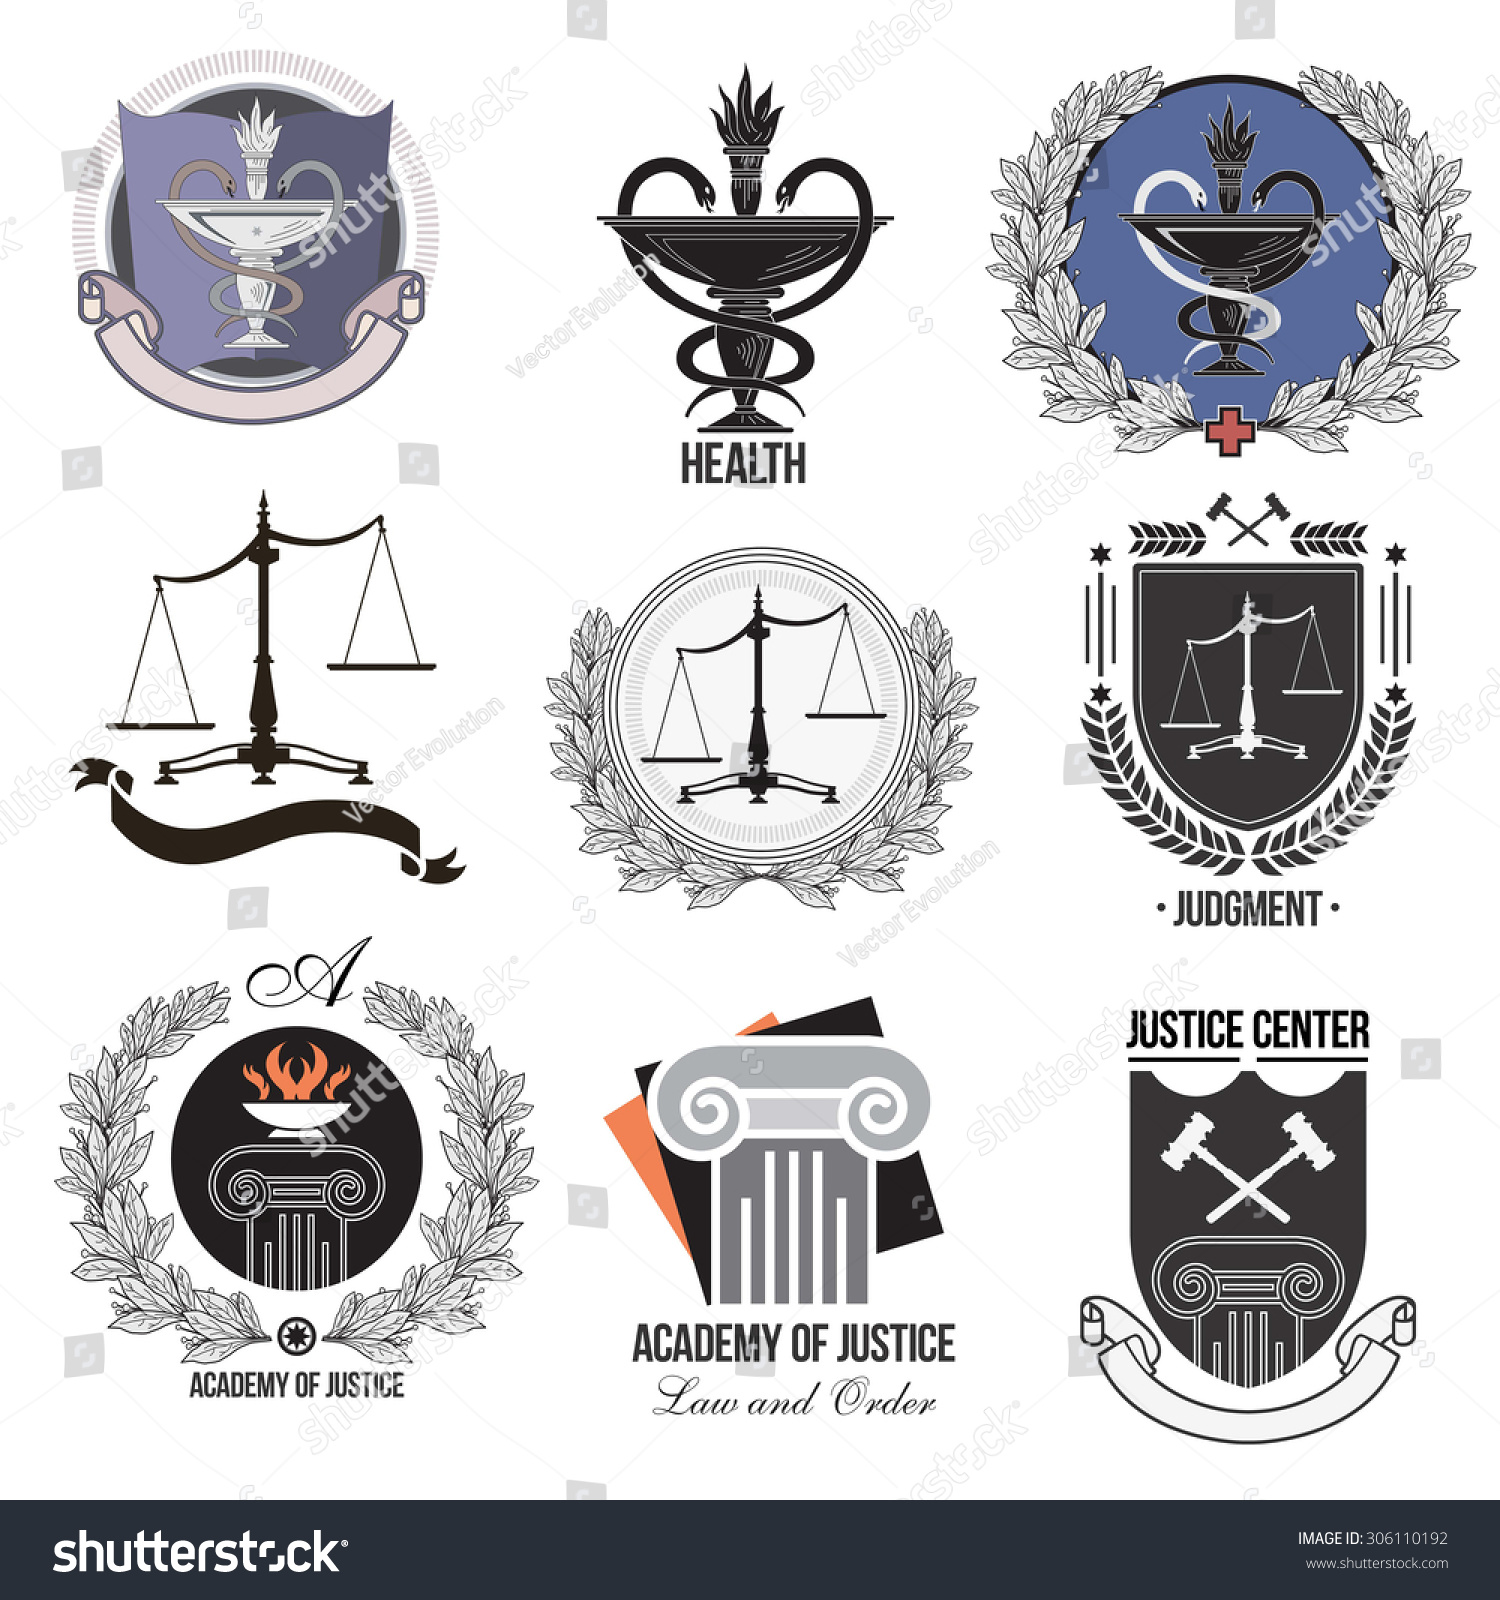 Health Medical Law: Set Justice Academy Health Care Logos Stock Vector